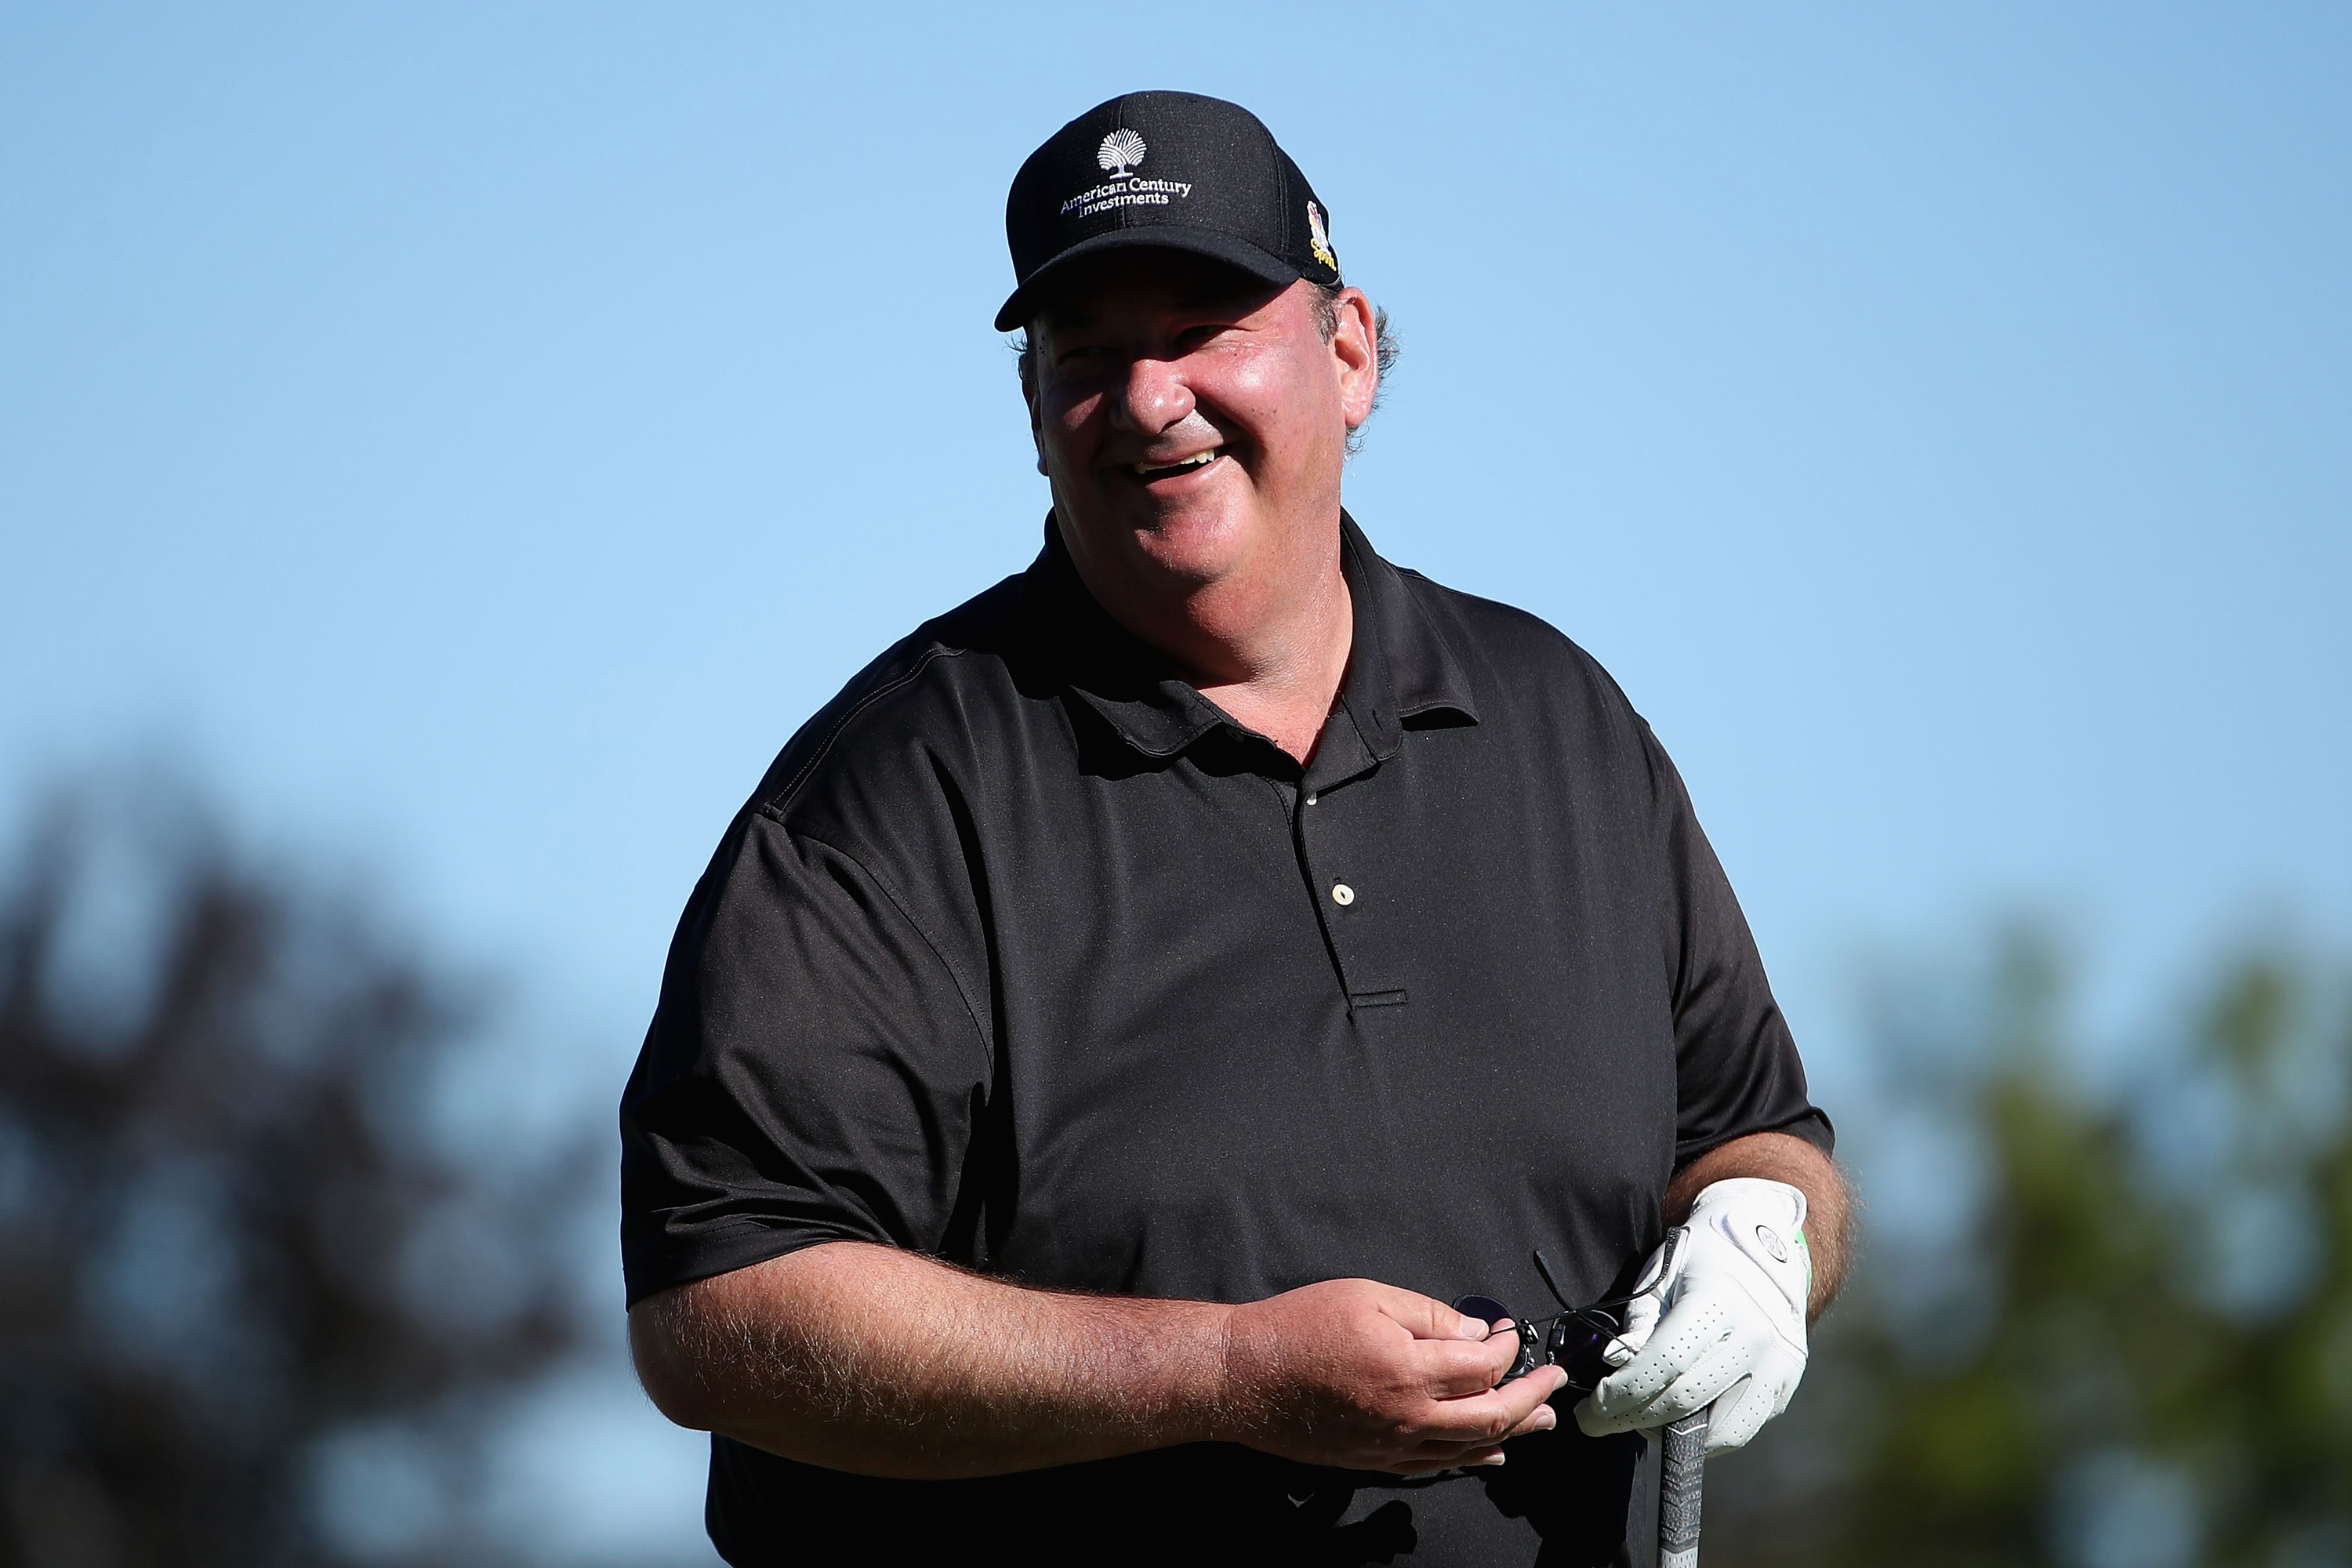 Brian laughs while out on a golf course